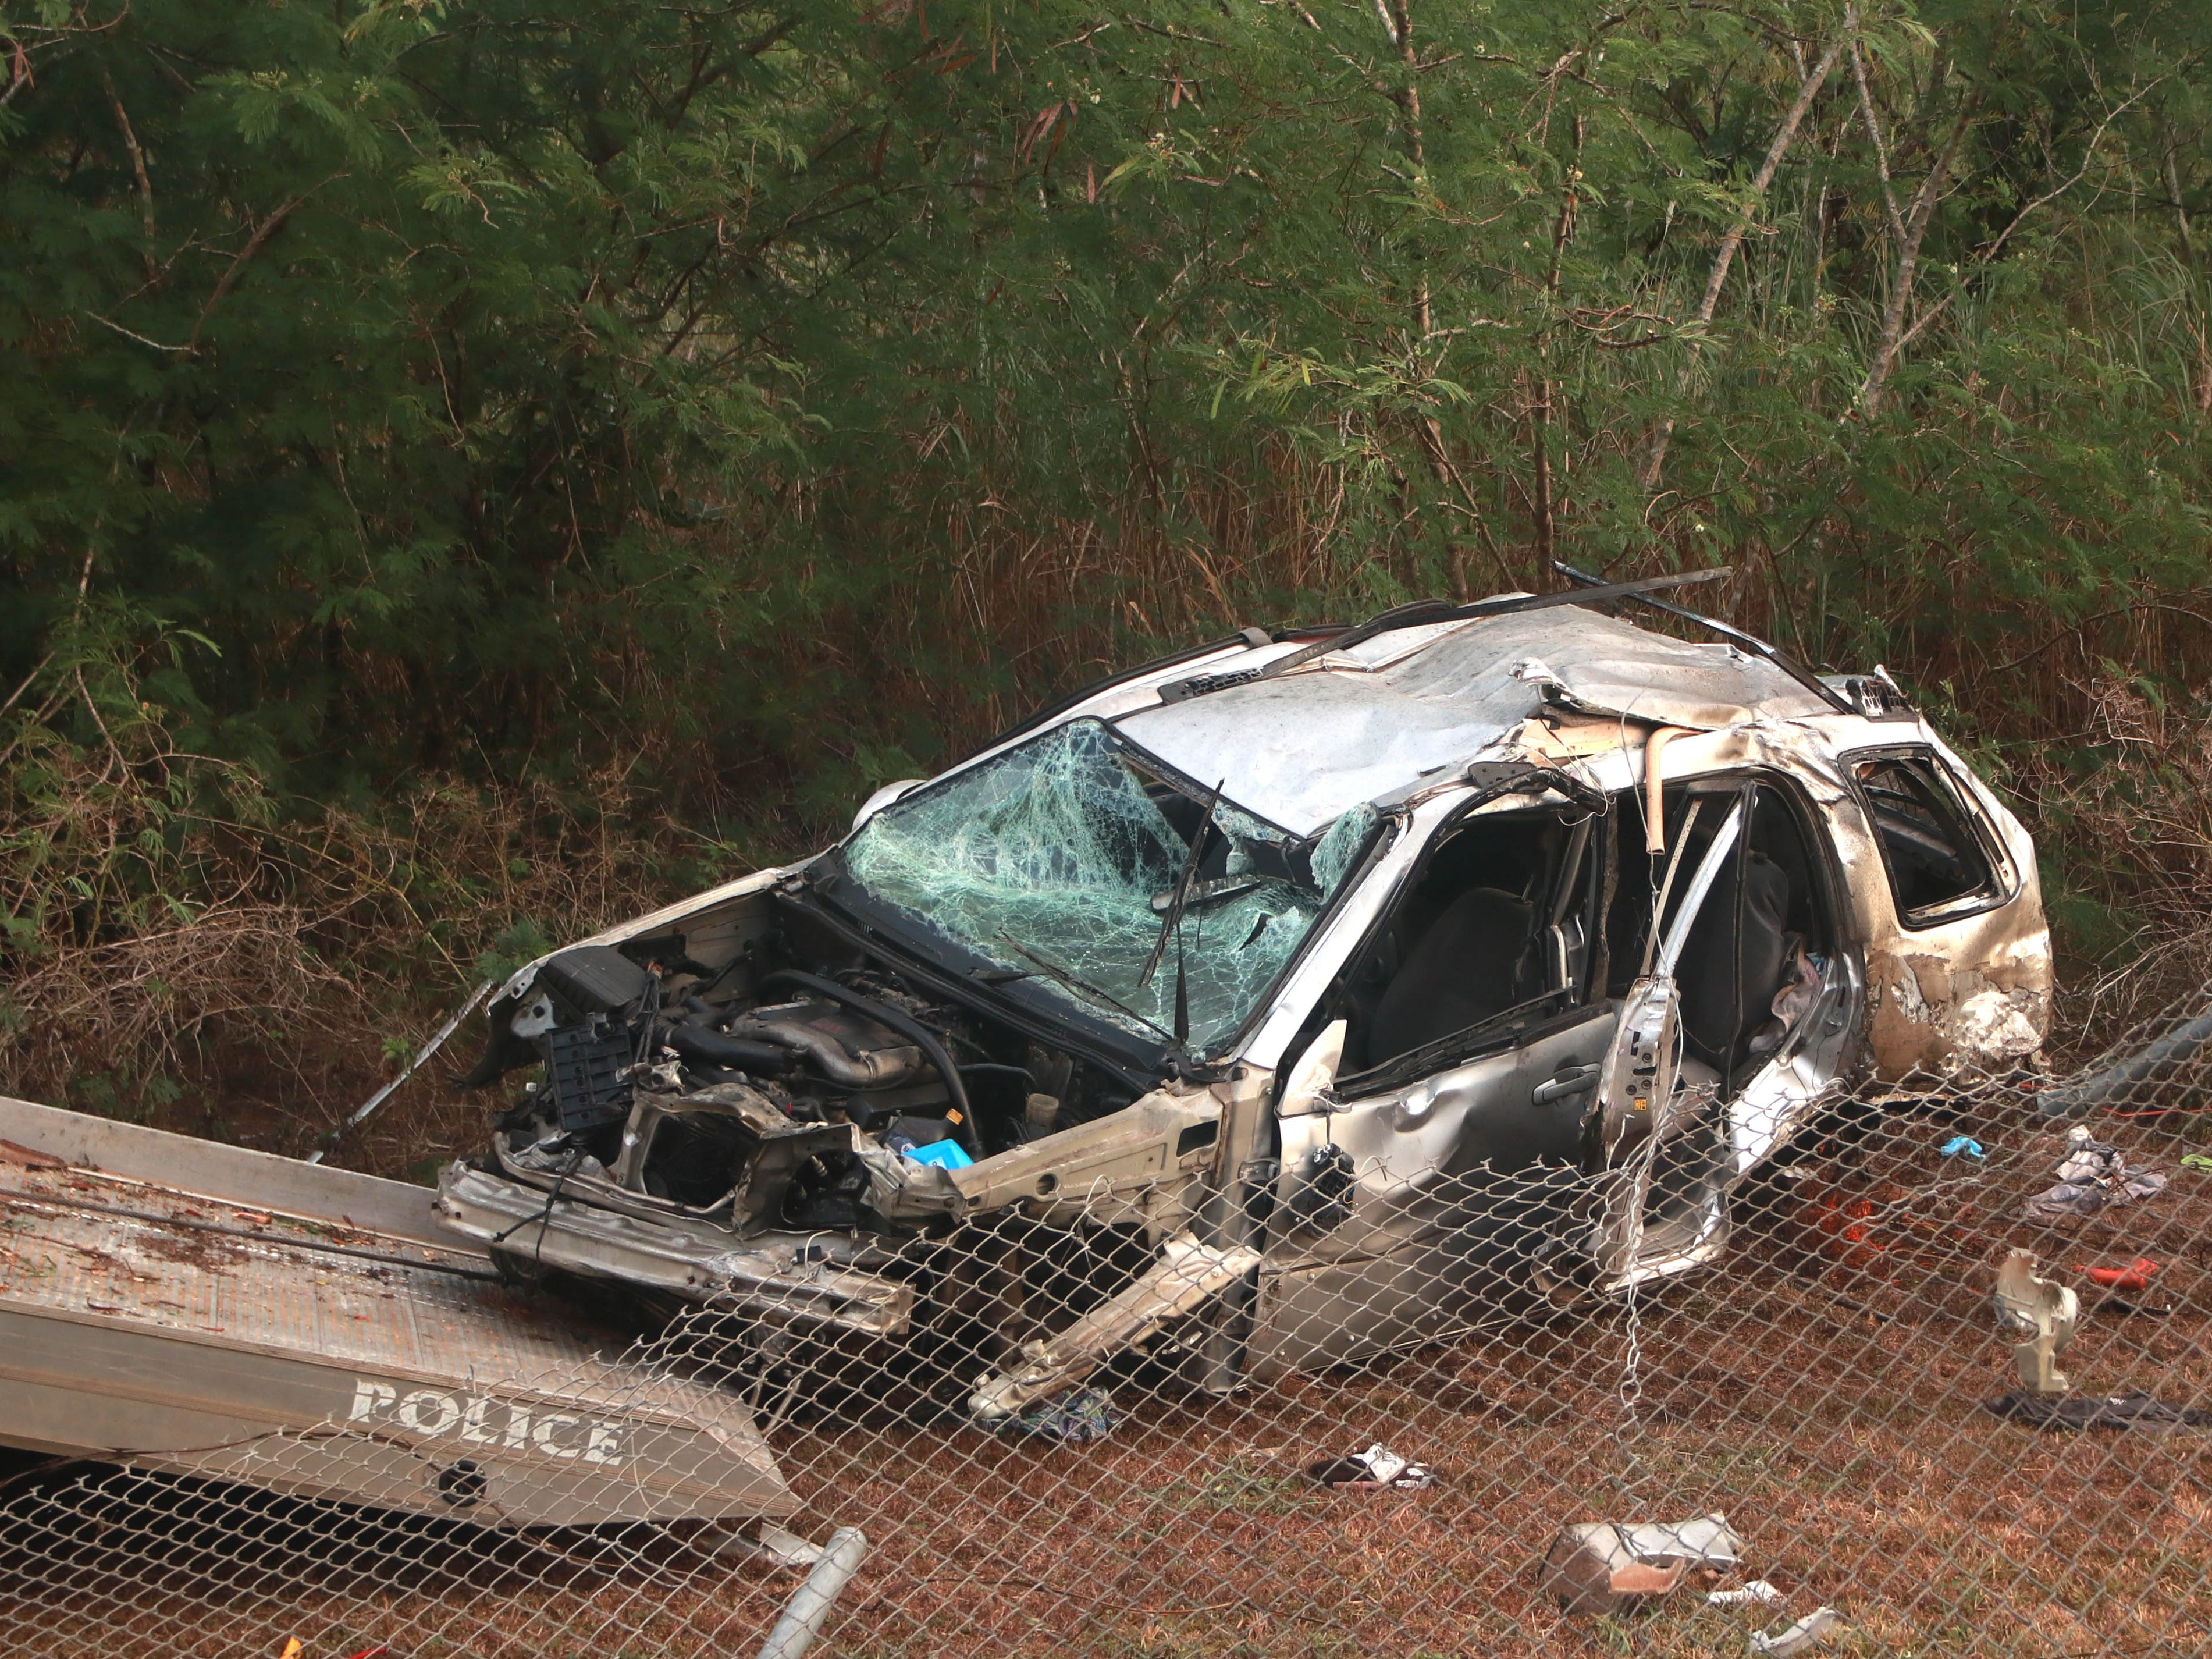 The mangled silver SUV involved in a fatal car accident near the entrance to Agat on Tuesday, APril 16, 2019.